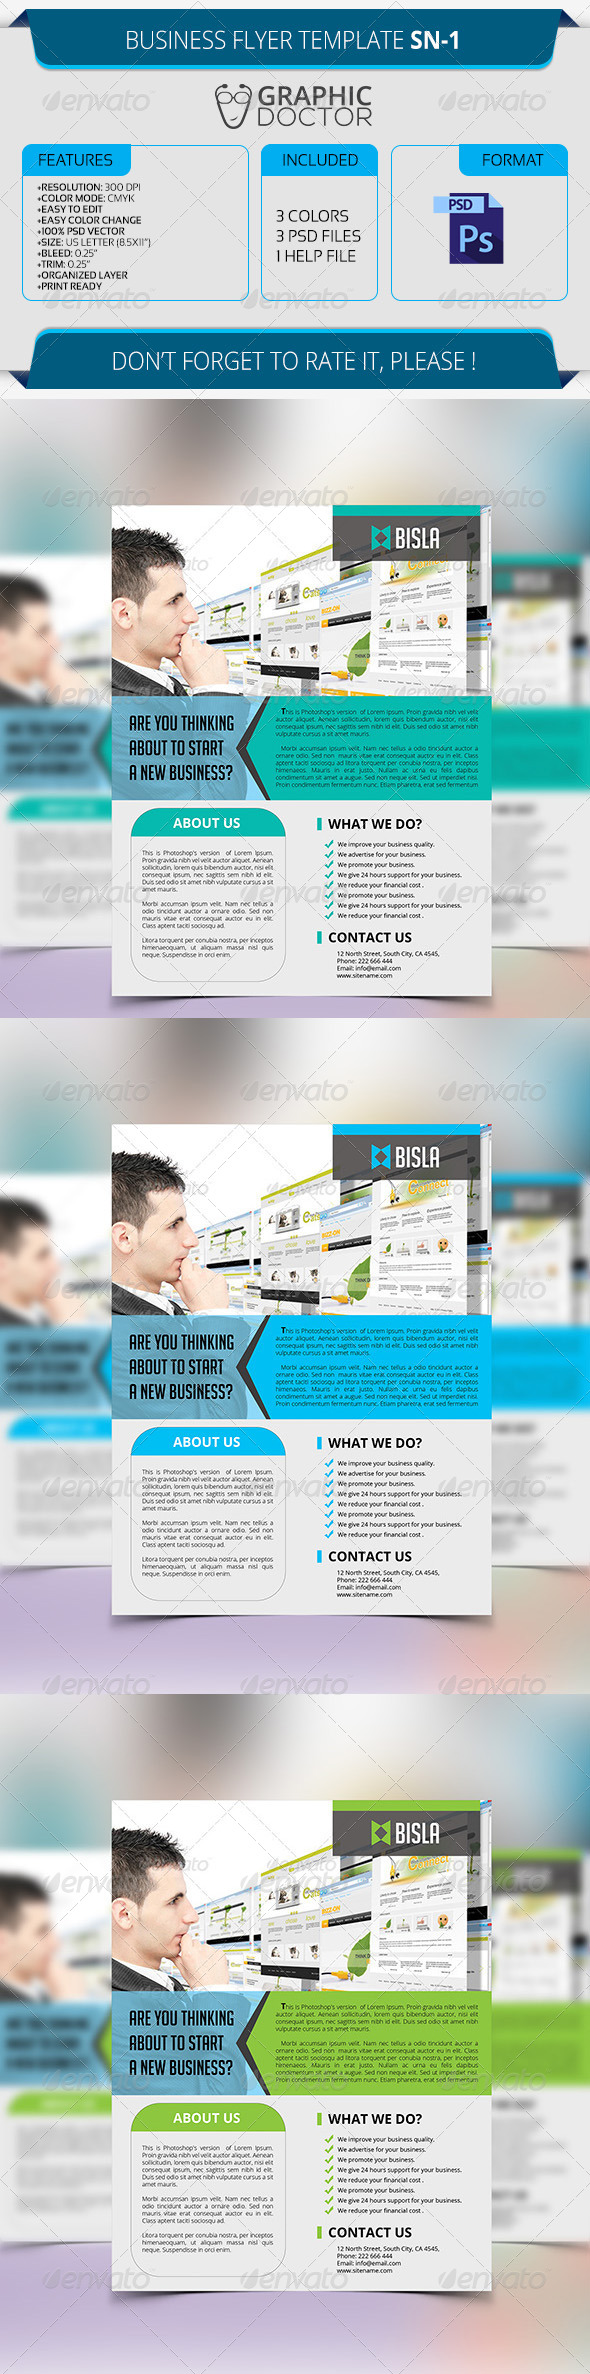 Business Flyer Template SN-1